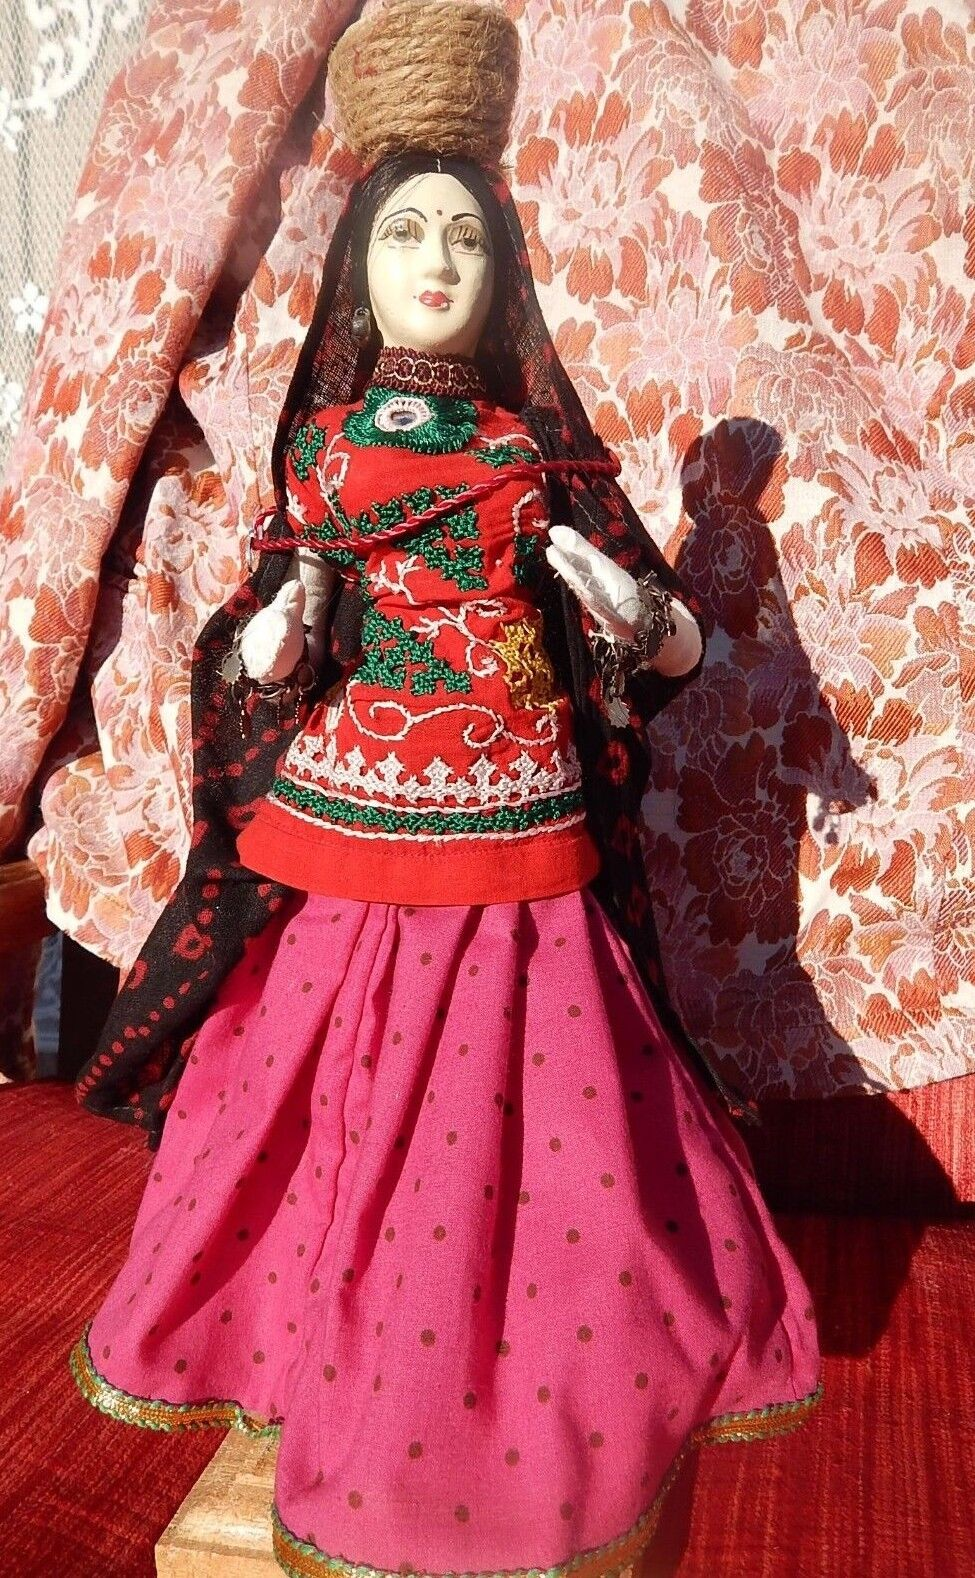 Banjara Gypsy Cloth Doll Suzani outfit embroiderosso Ethnic Tribal Doll